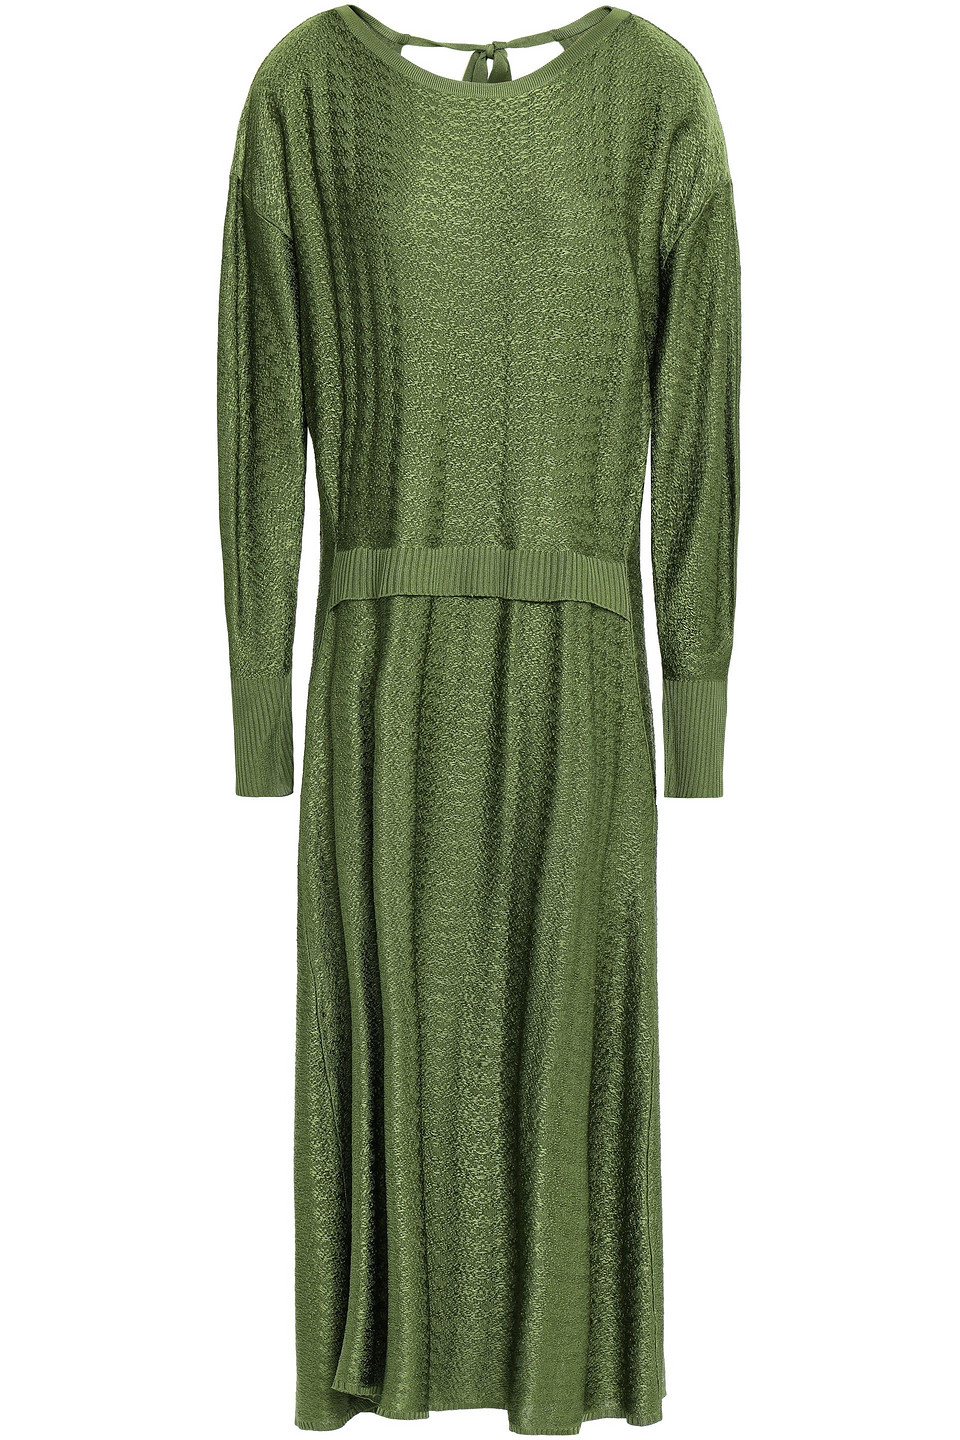 Esteban Cortazar | Esteban Cortazar Woman Jacquard-knit Midi Dress Sage Green | Clouty